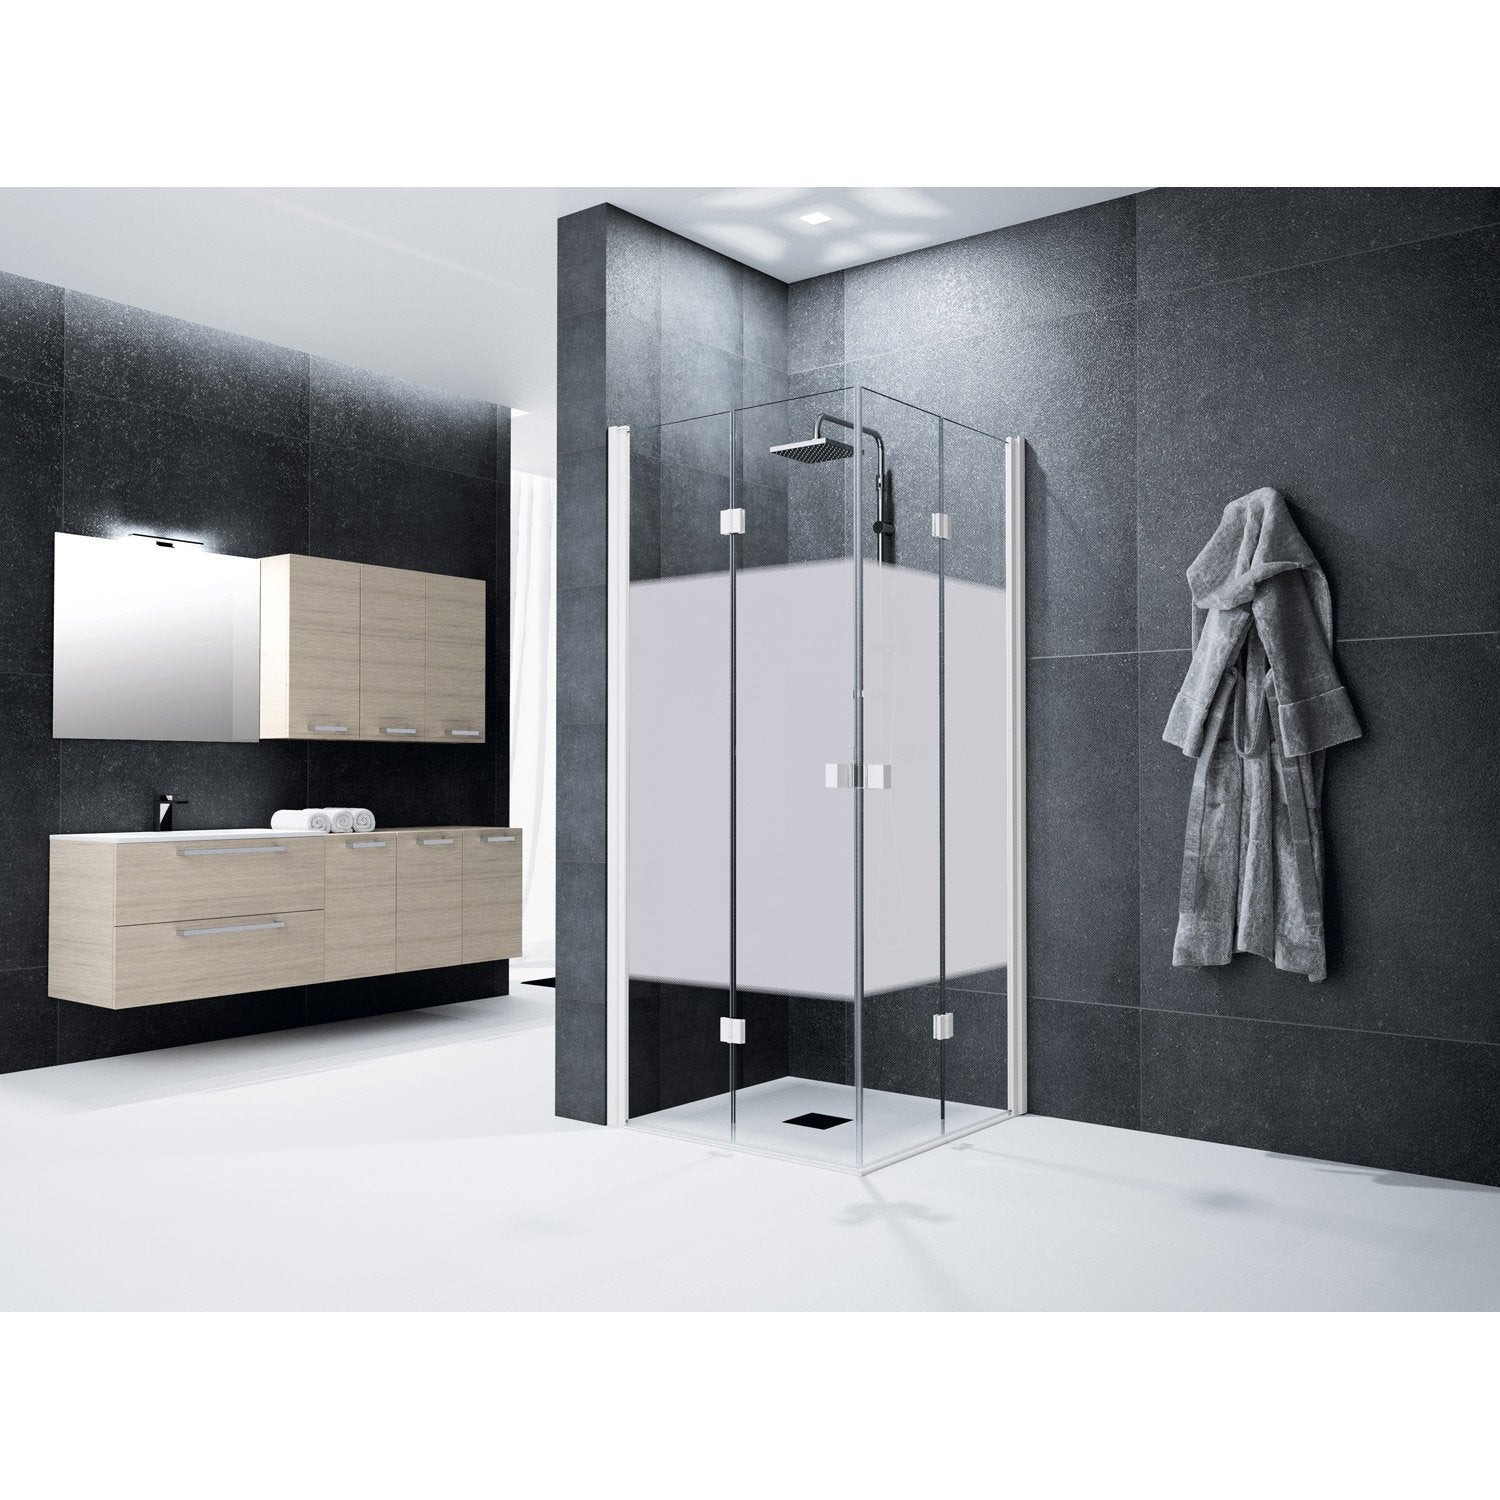 porte de douche pivot pliante angle carr 120 x 120 cm s rigraphi neo leroy merlin. Black Bedroom Furniture Sets. Home Design Ideas